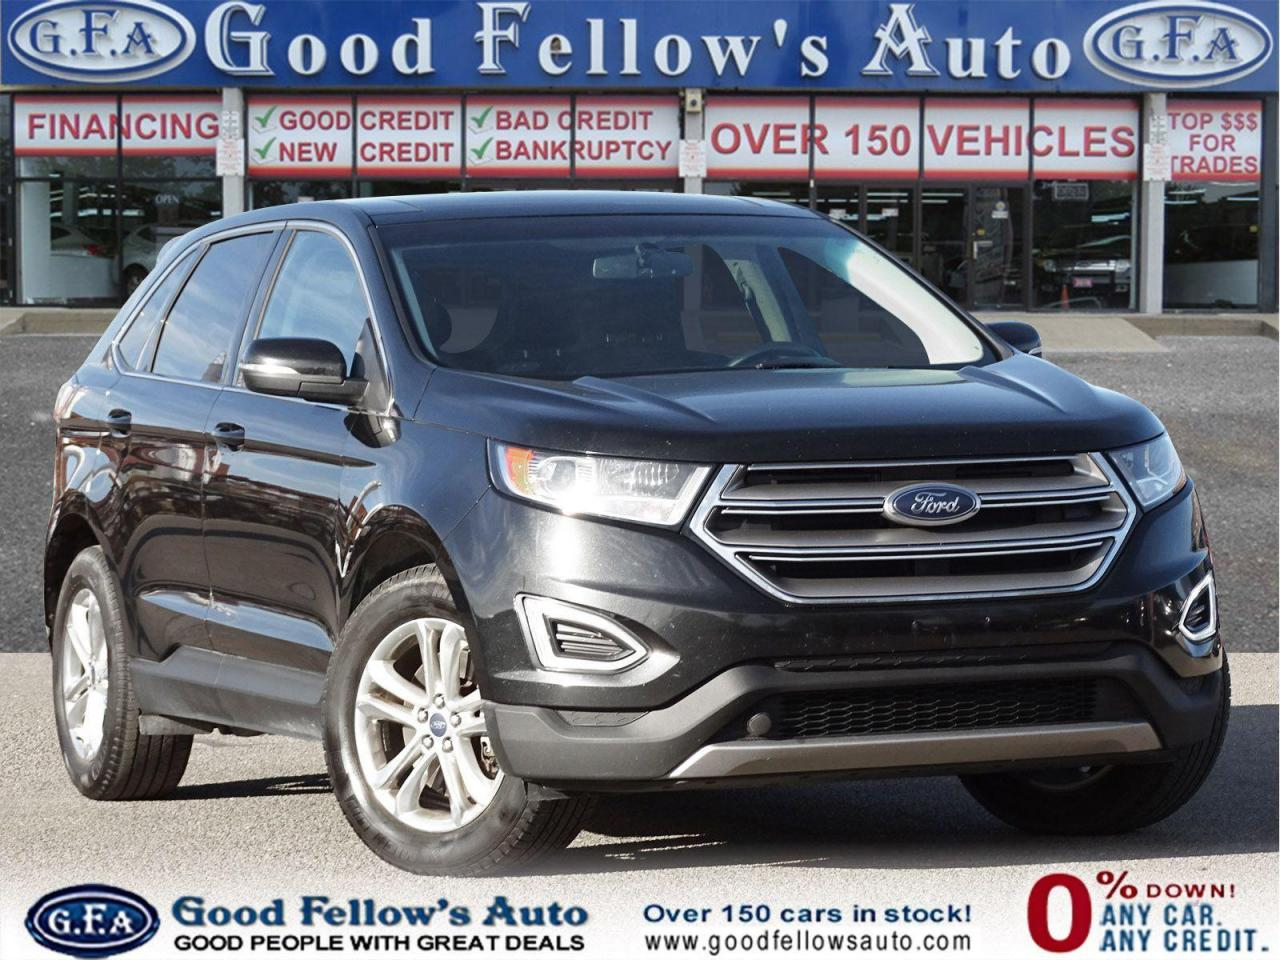 used 2015 Ford Edge car, priced at $17,900